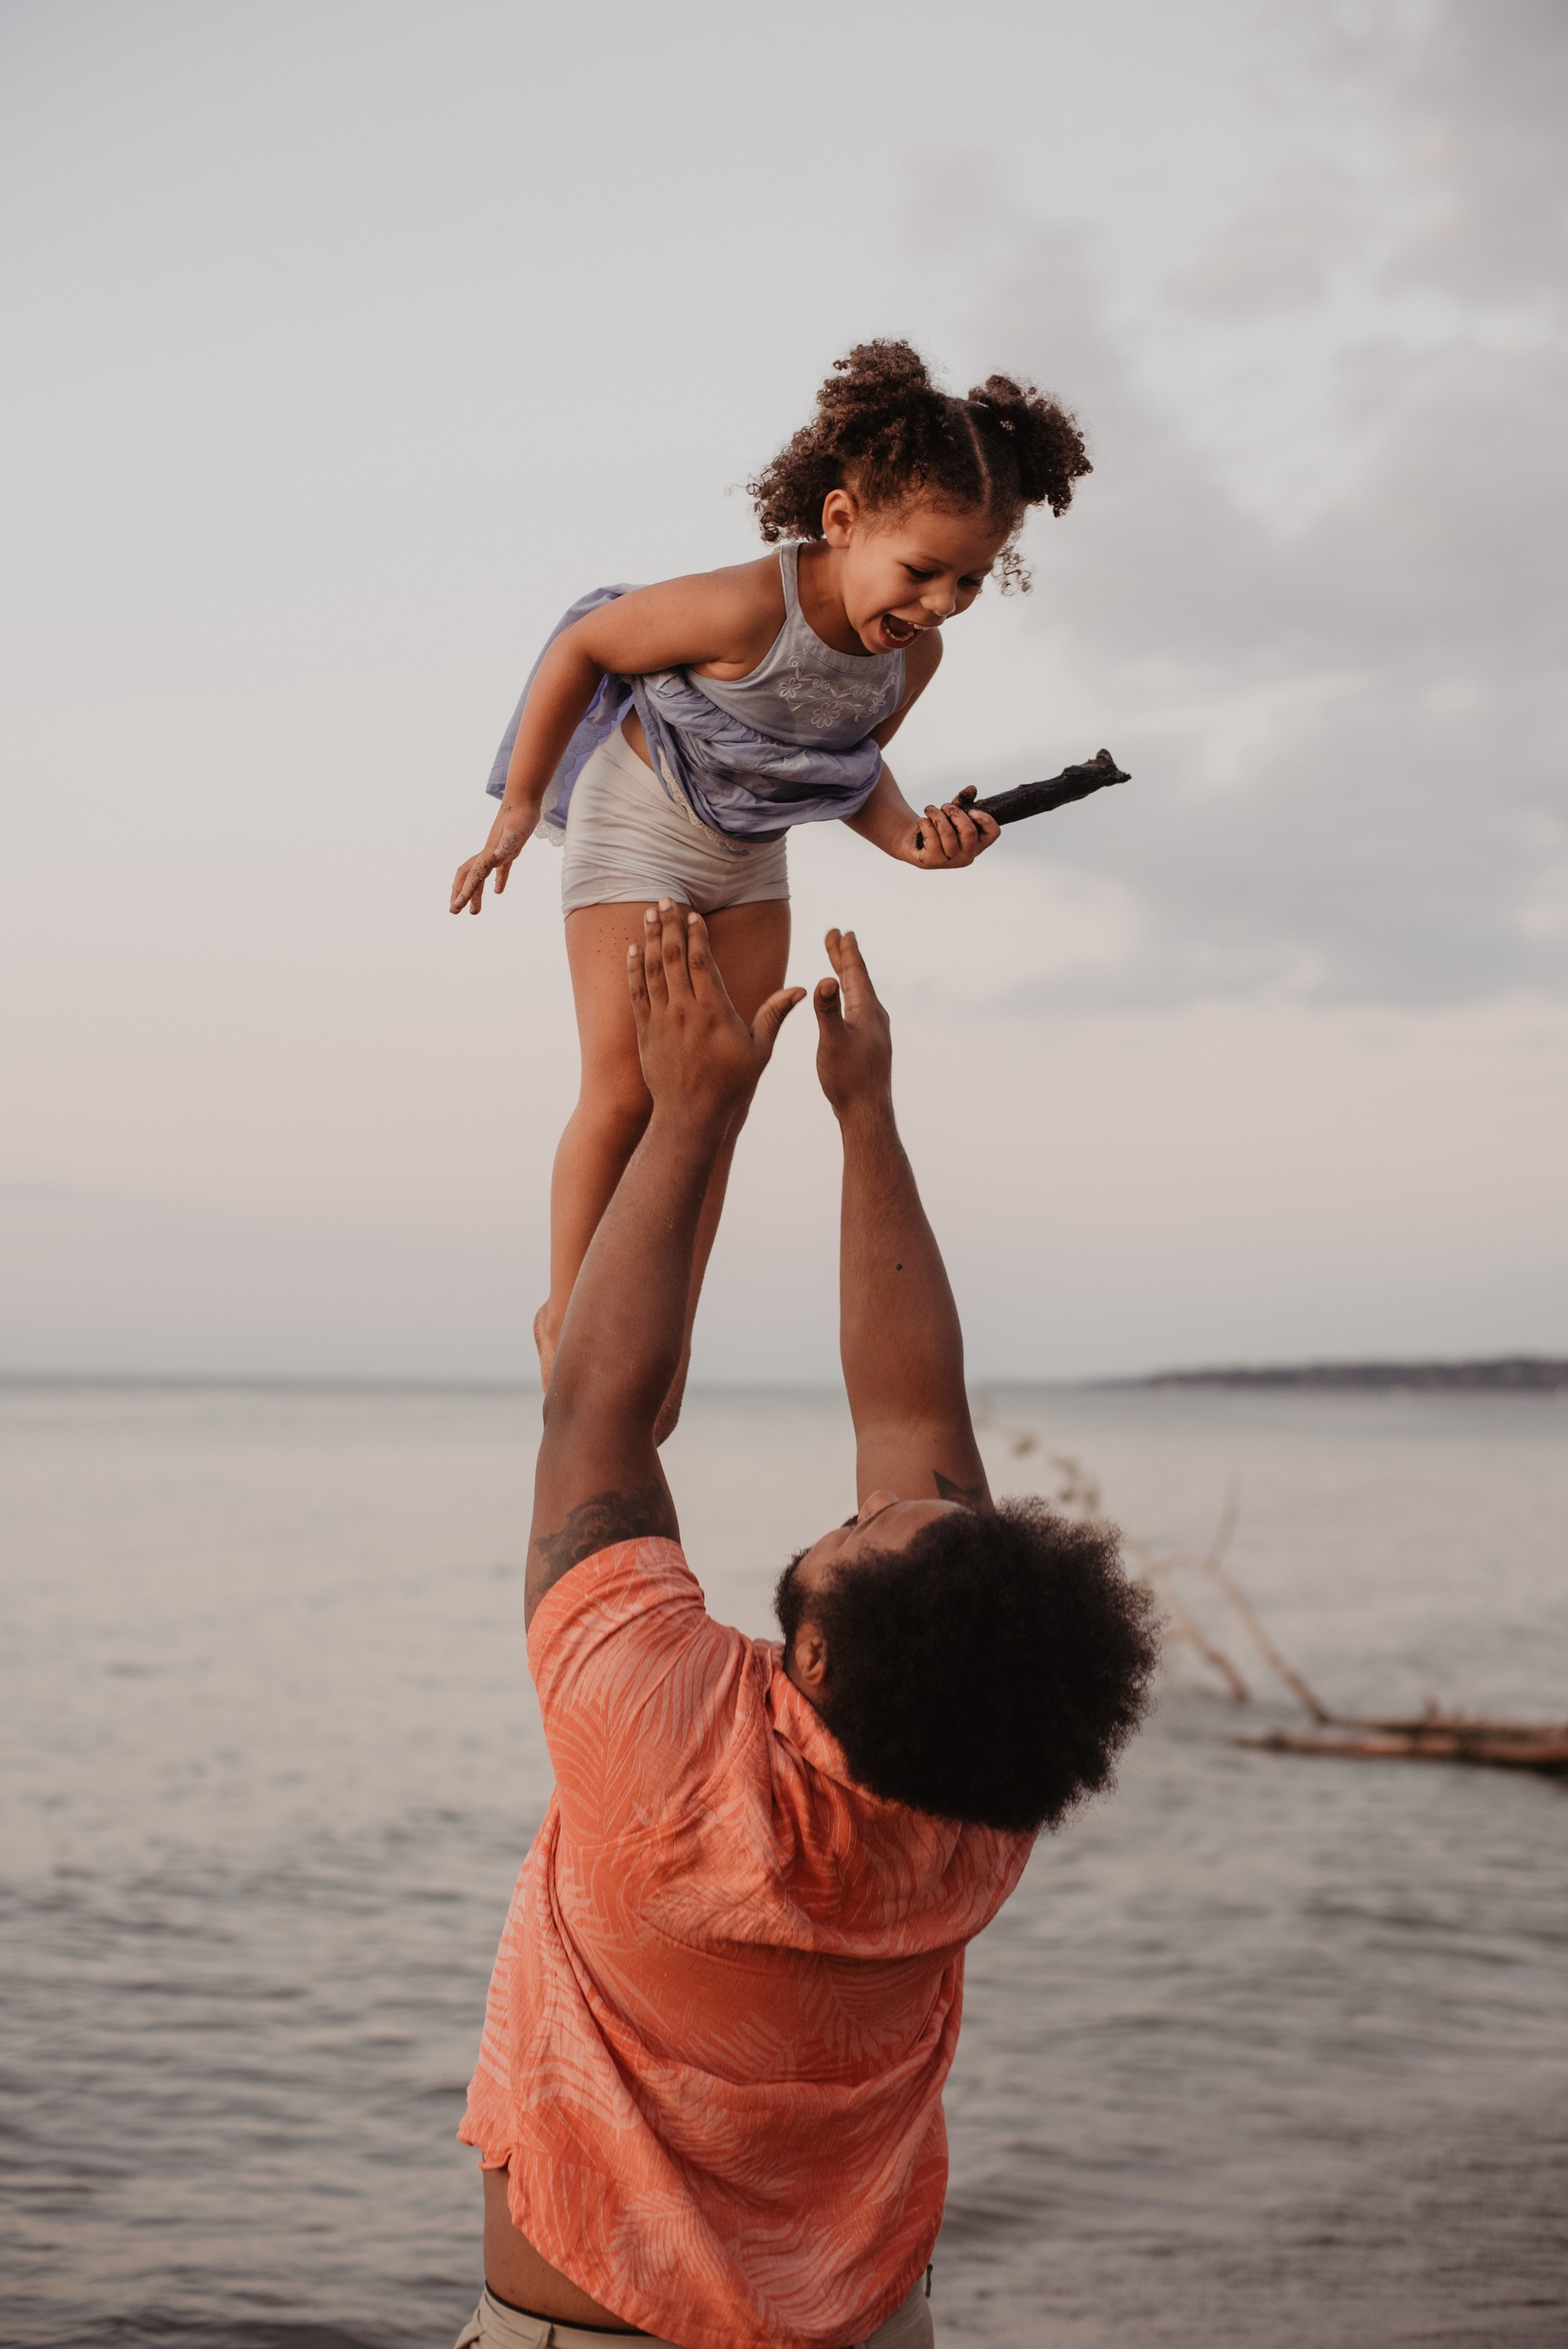 Image of a happy little girl being lifted in the air by her dad at the beach.